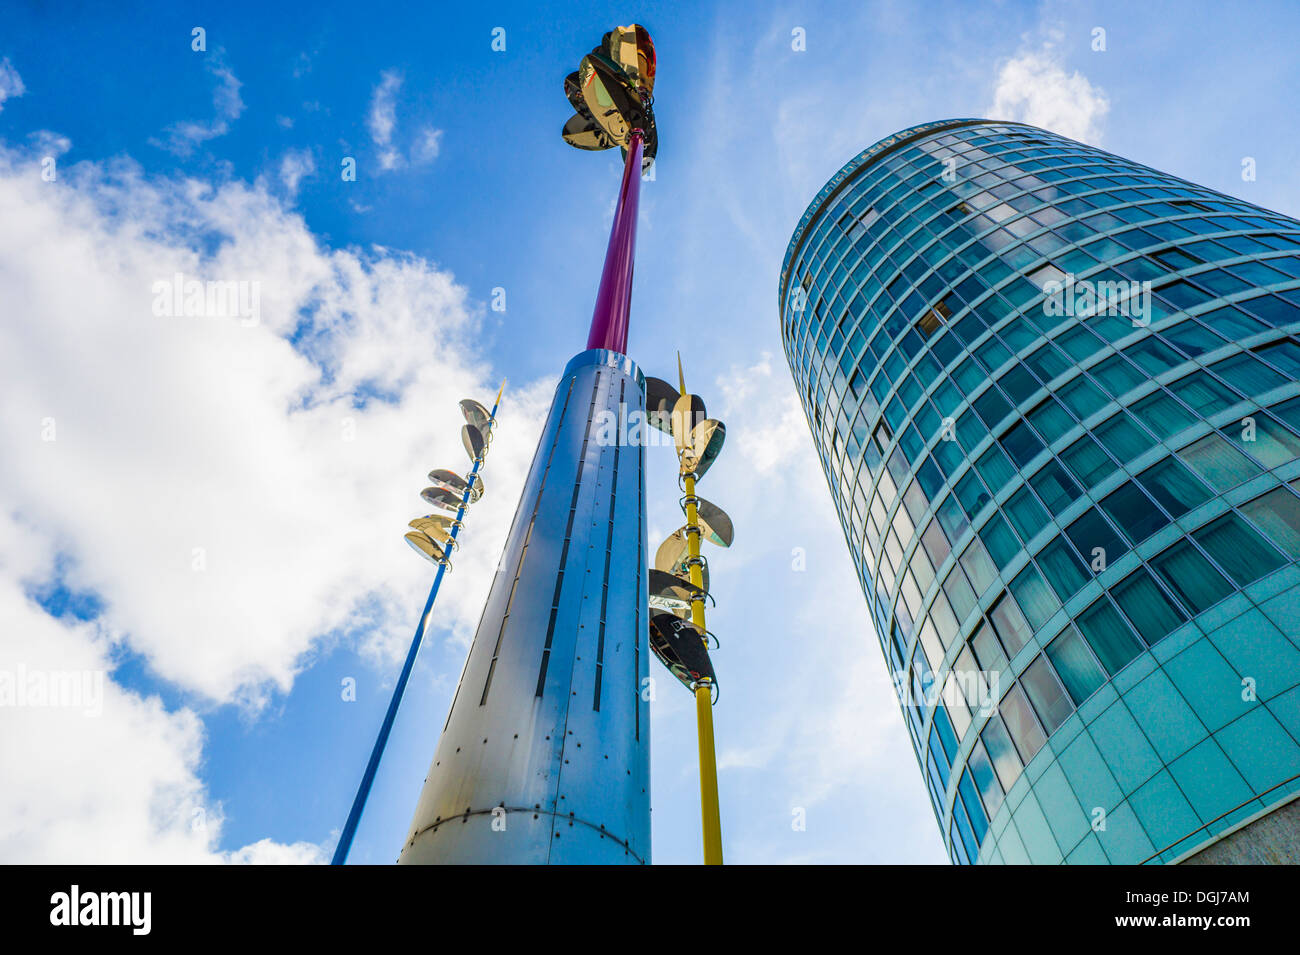 Sculptural poles and The Rotunda in Birmingham. - Stock Image